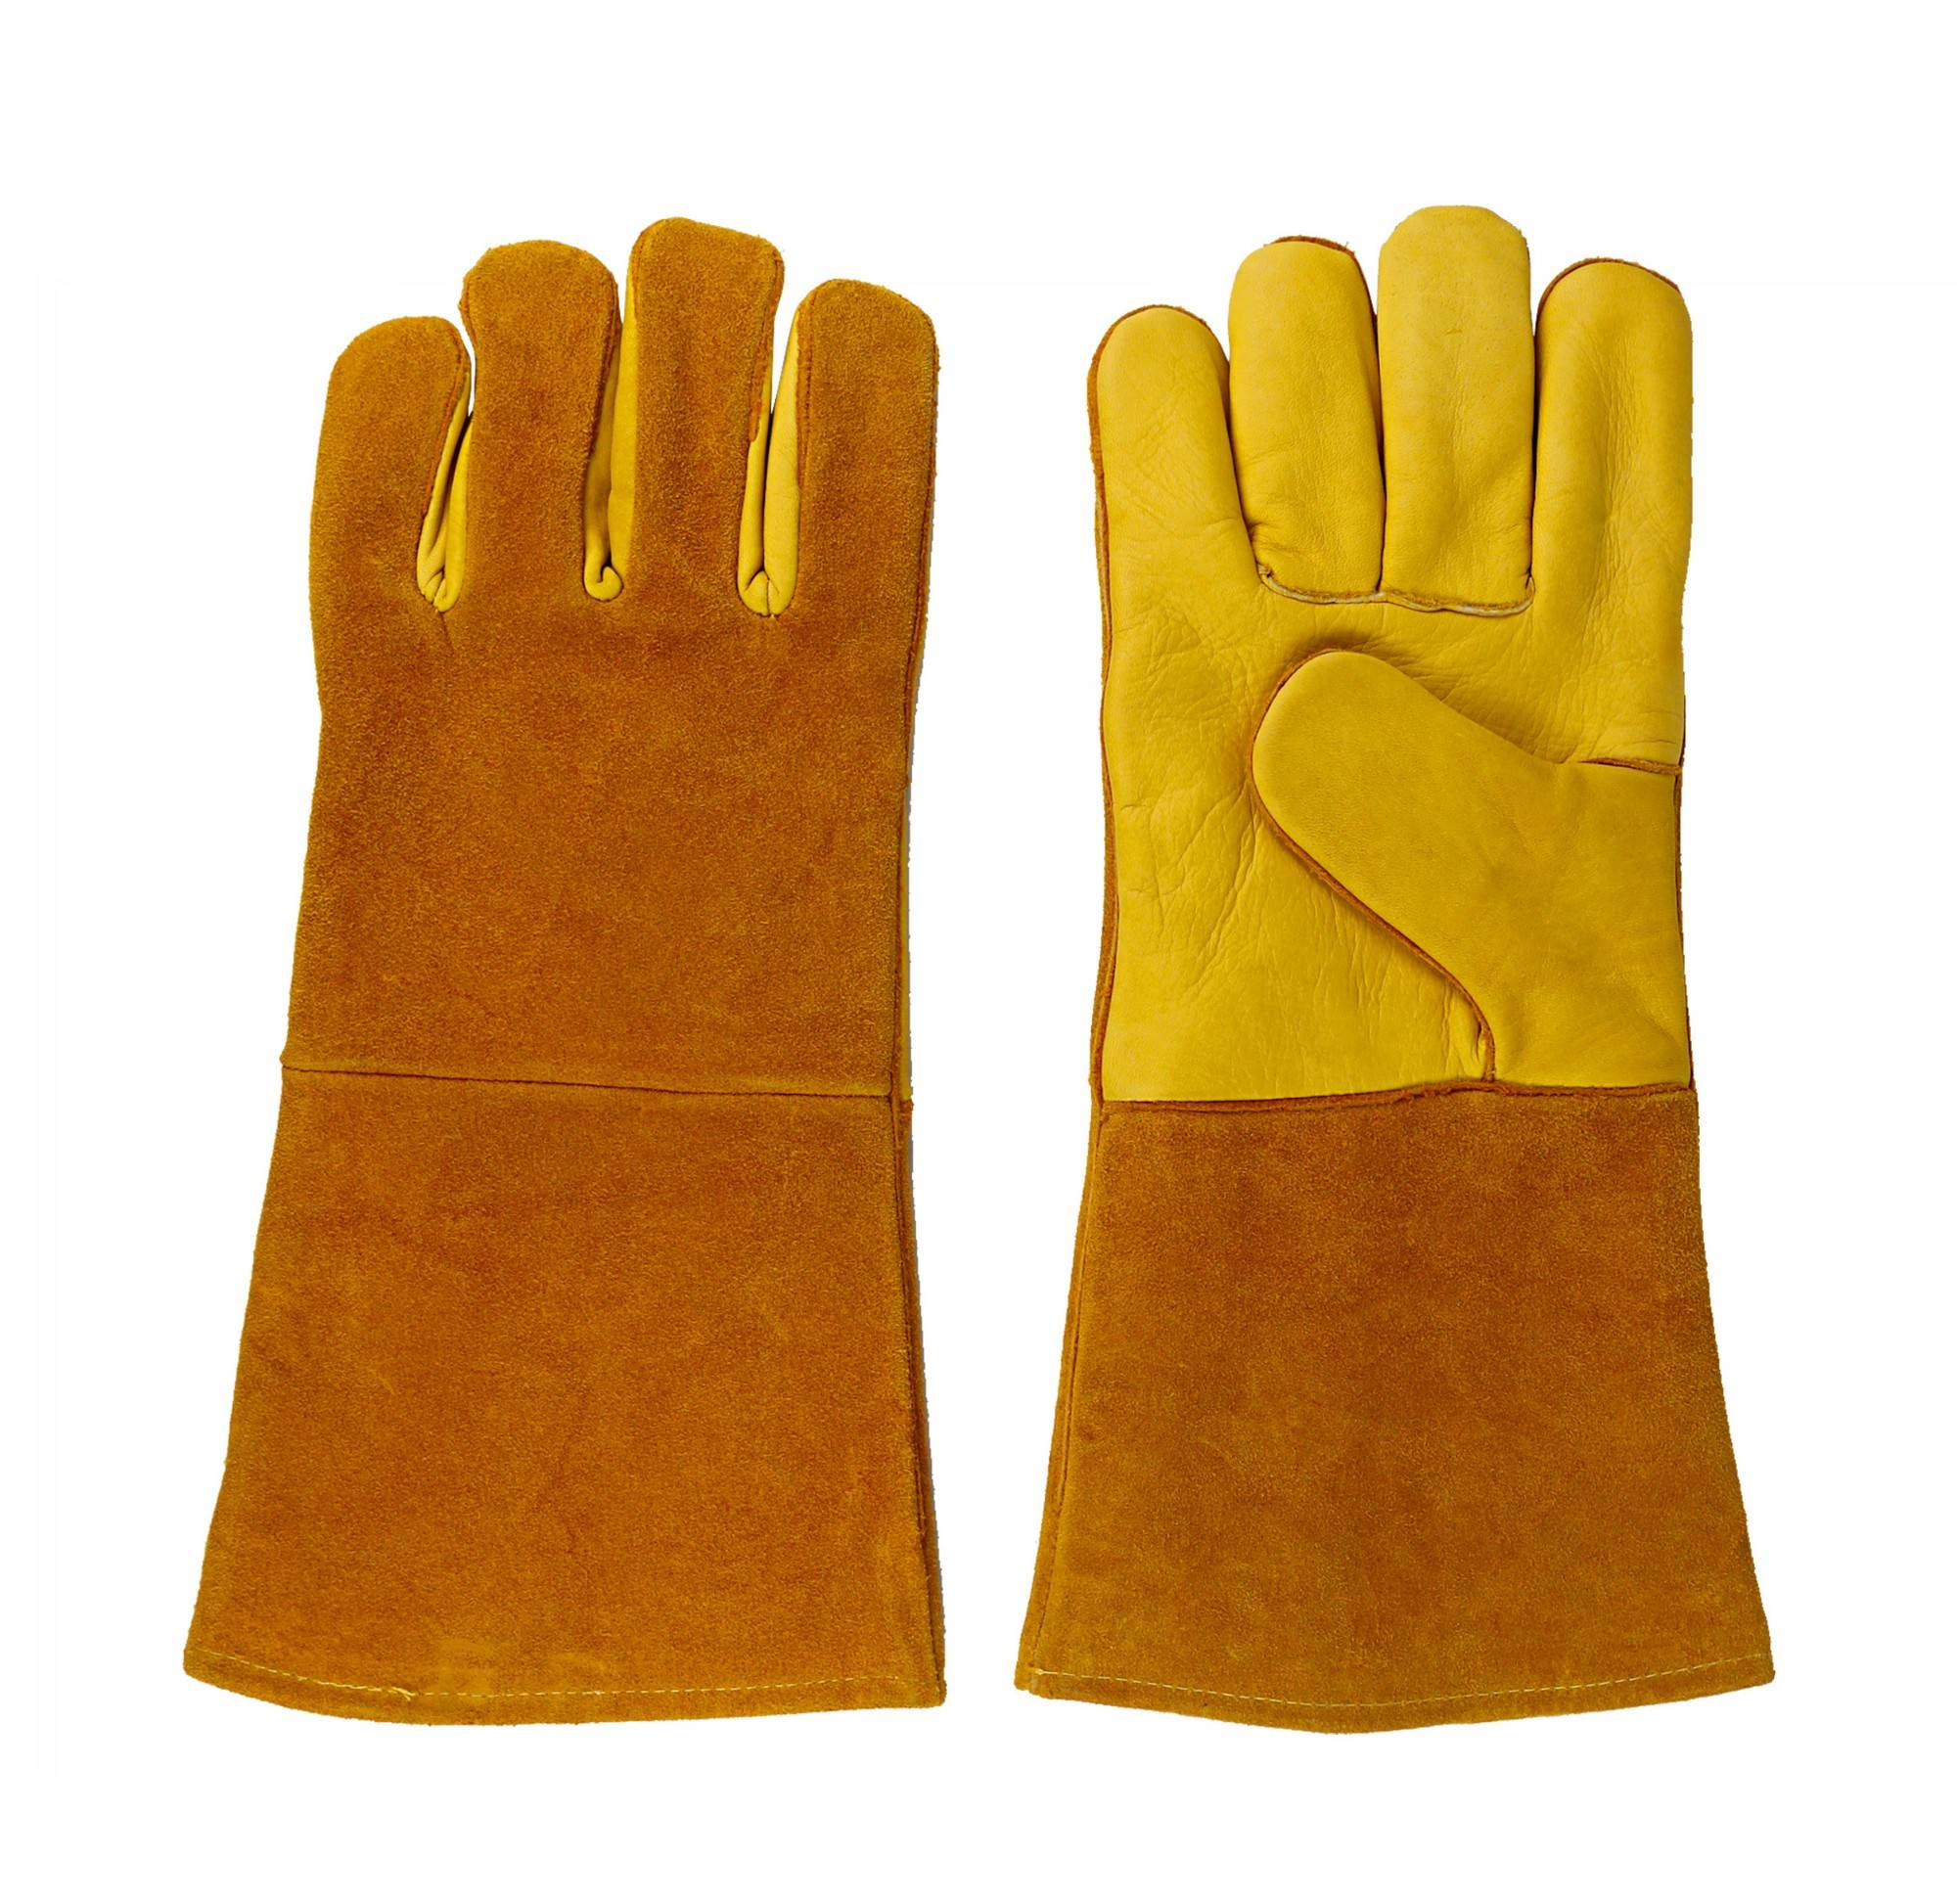 KIM YUAN Leather Welding Gloves-Heat/Fire Resistant, for Welder/Oven/Fireplace/Animal Handling/BBQ